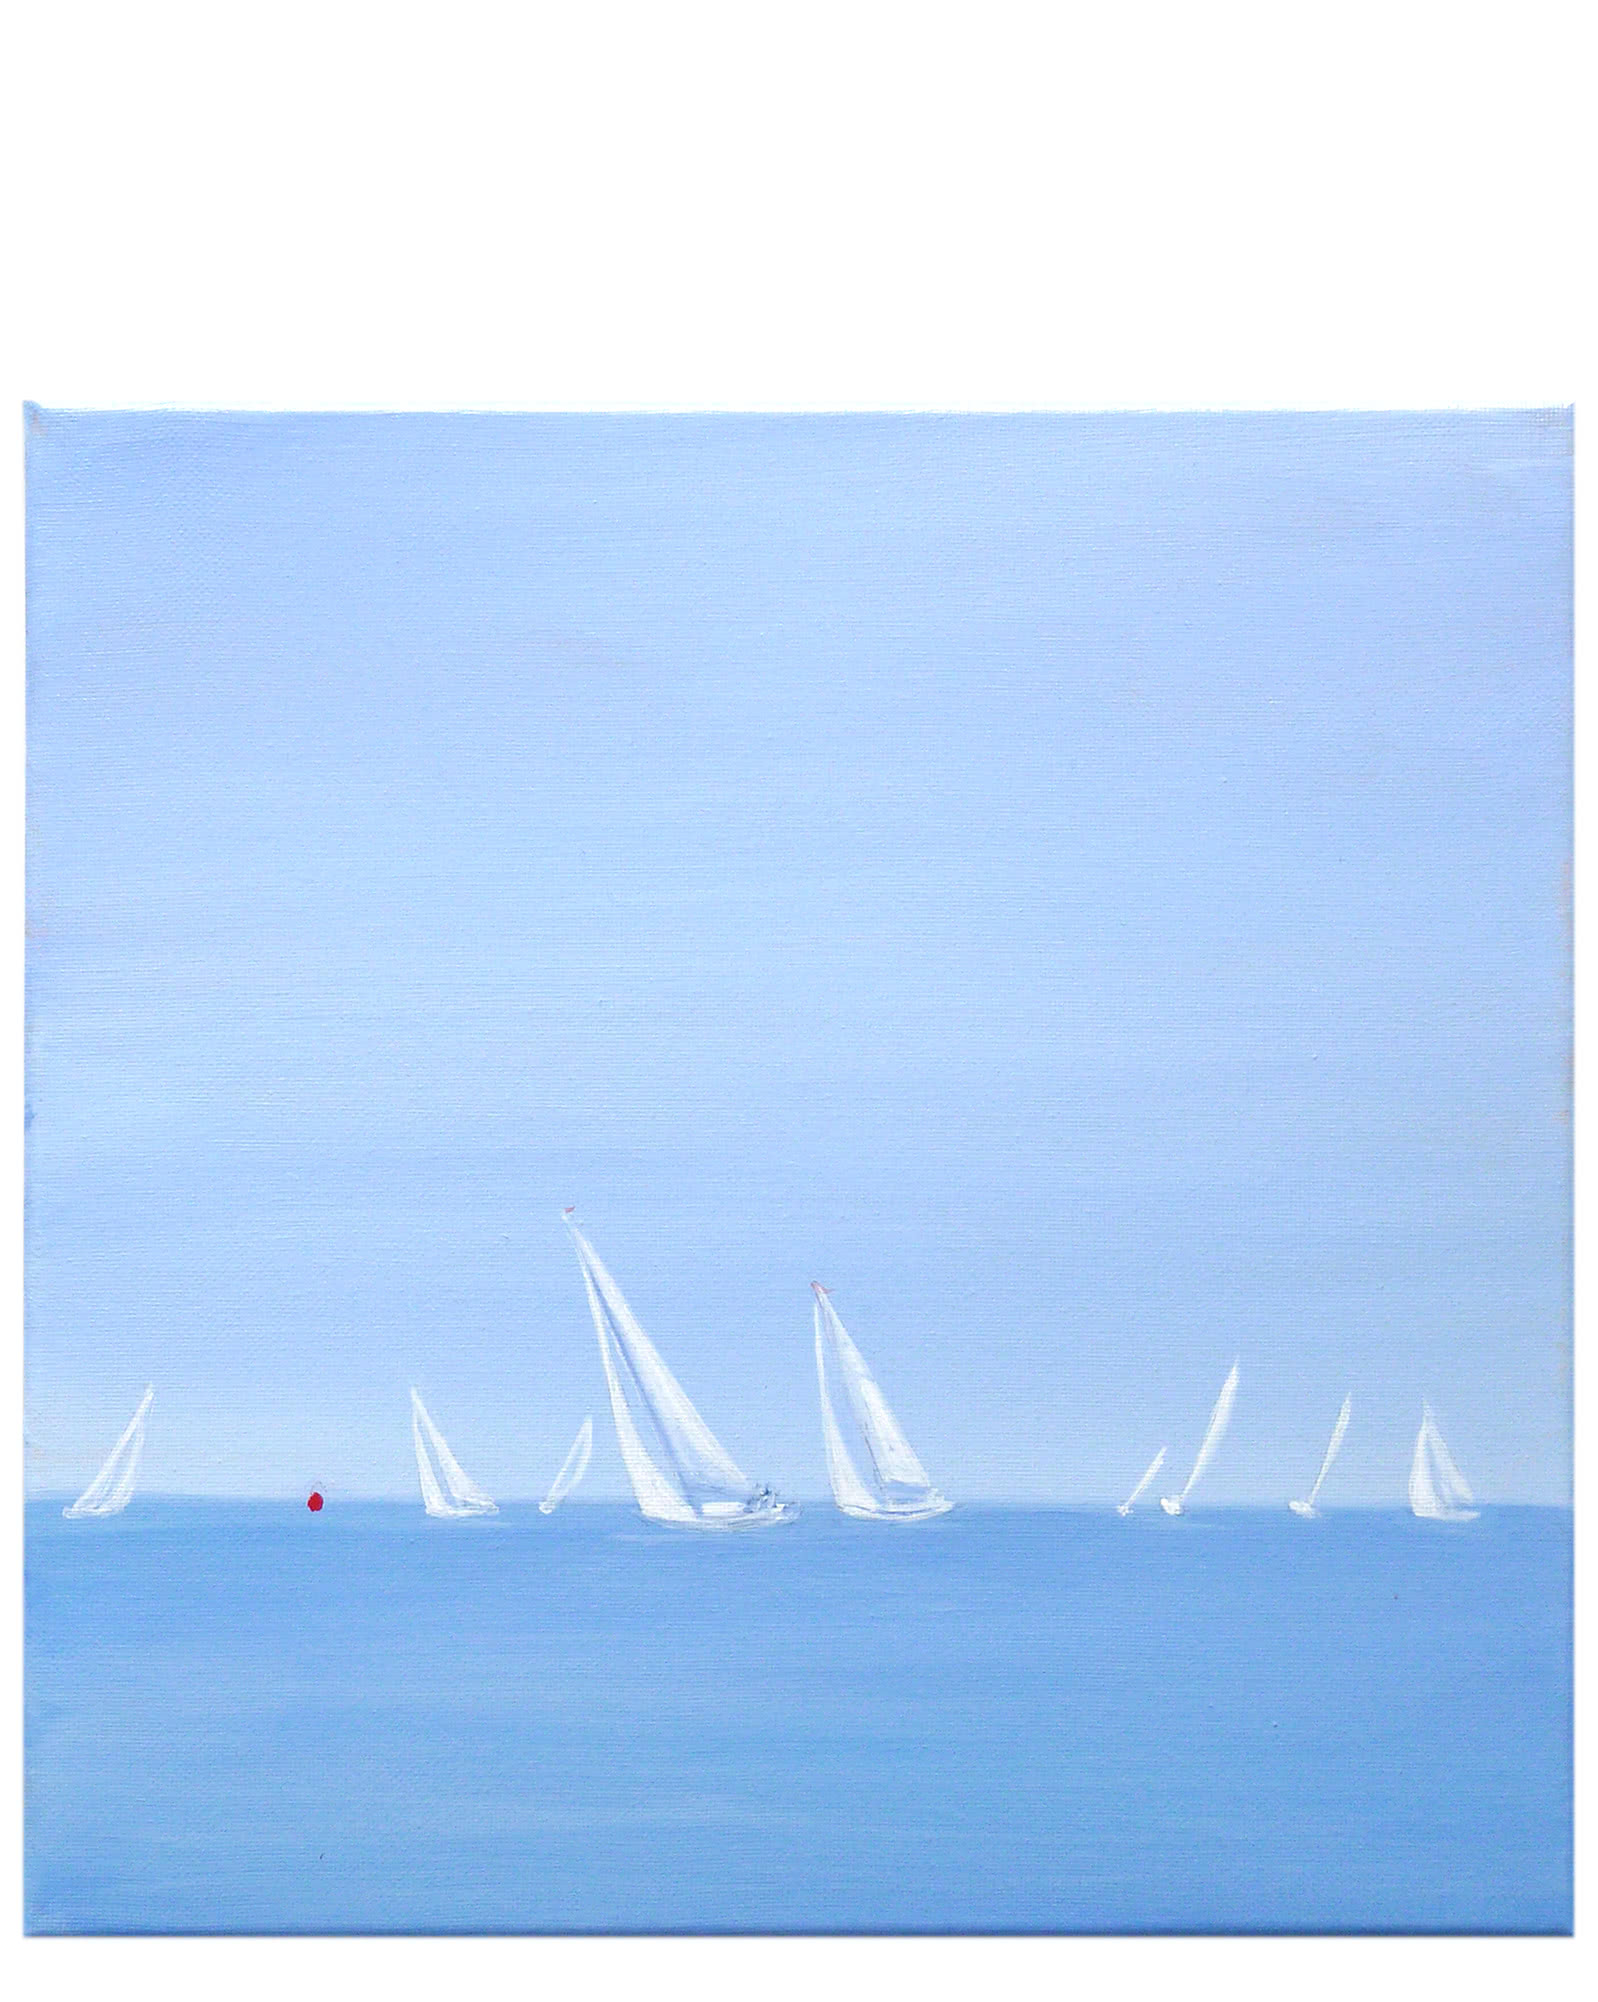 """Regatta # 2"" by Carol Saxe,"